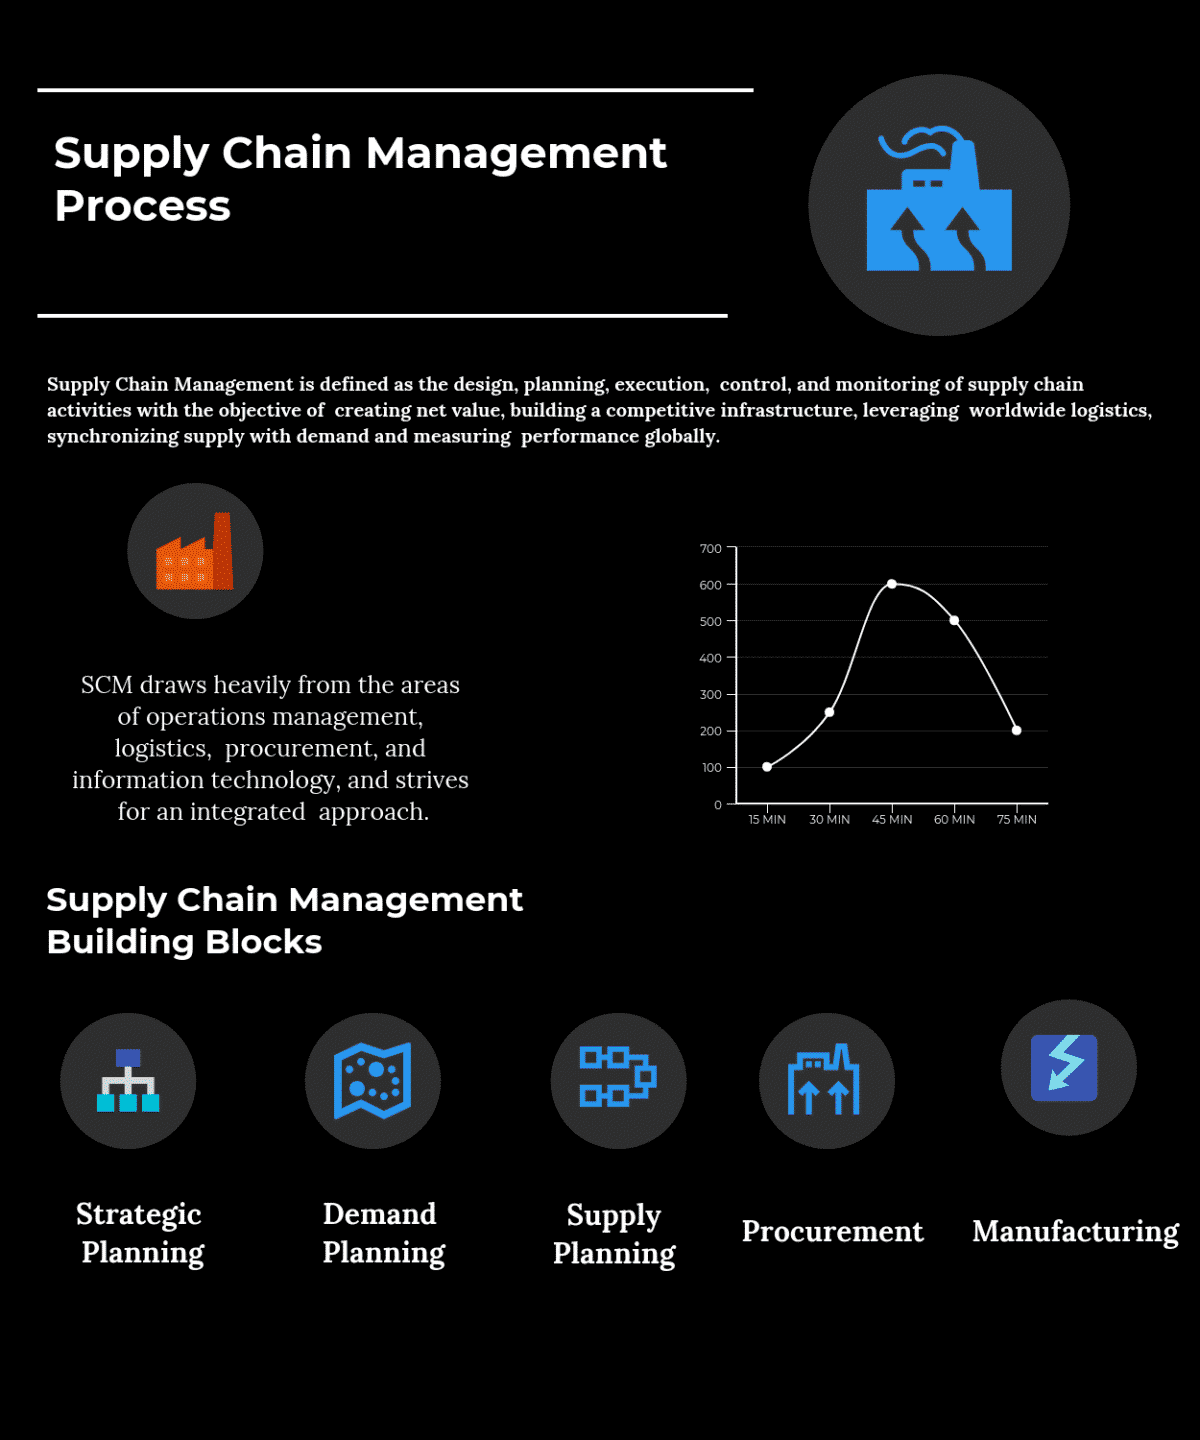 Pricing Process: Supply Chain Management Process